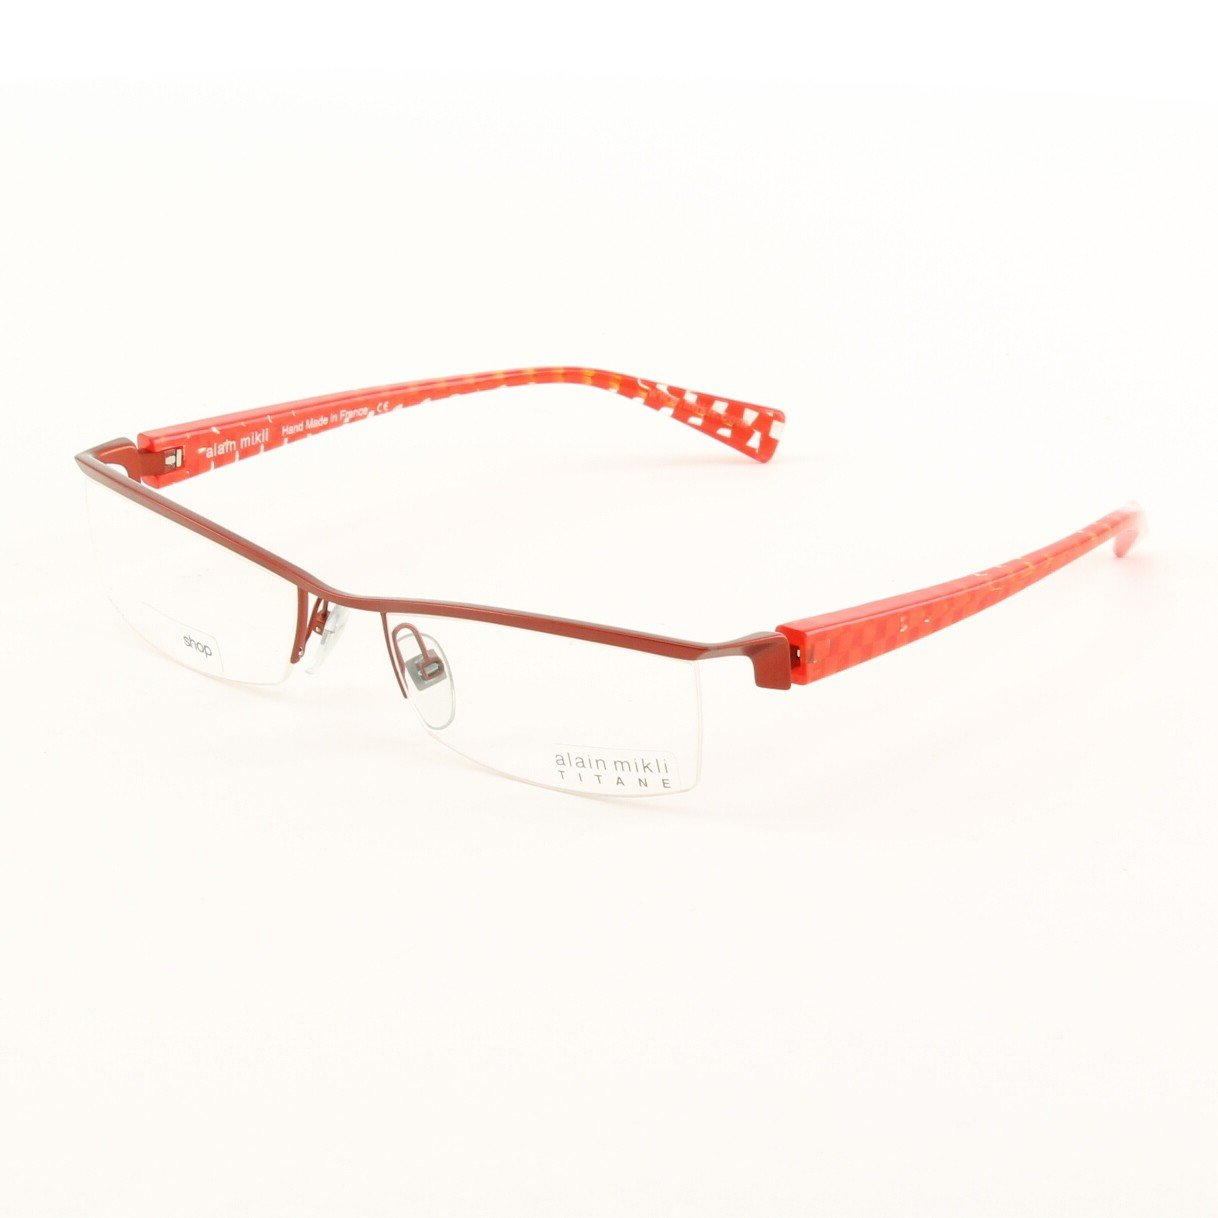 Alain Mikli Eyeglasses AL0523 Col. 20 Licorice Metallic Frame with Checkerboard Temples